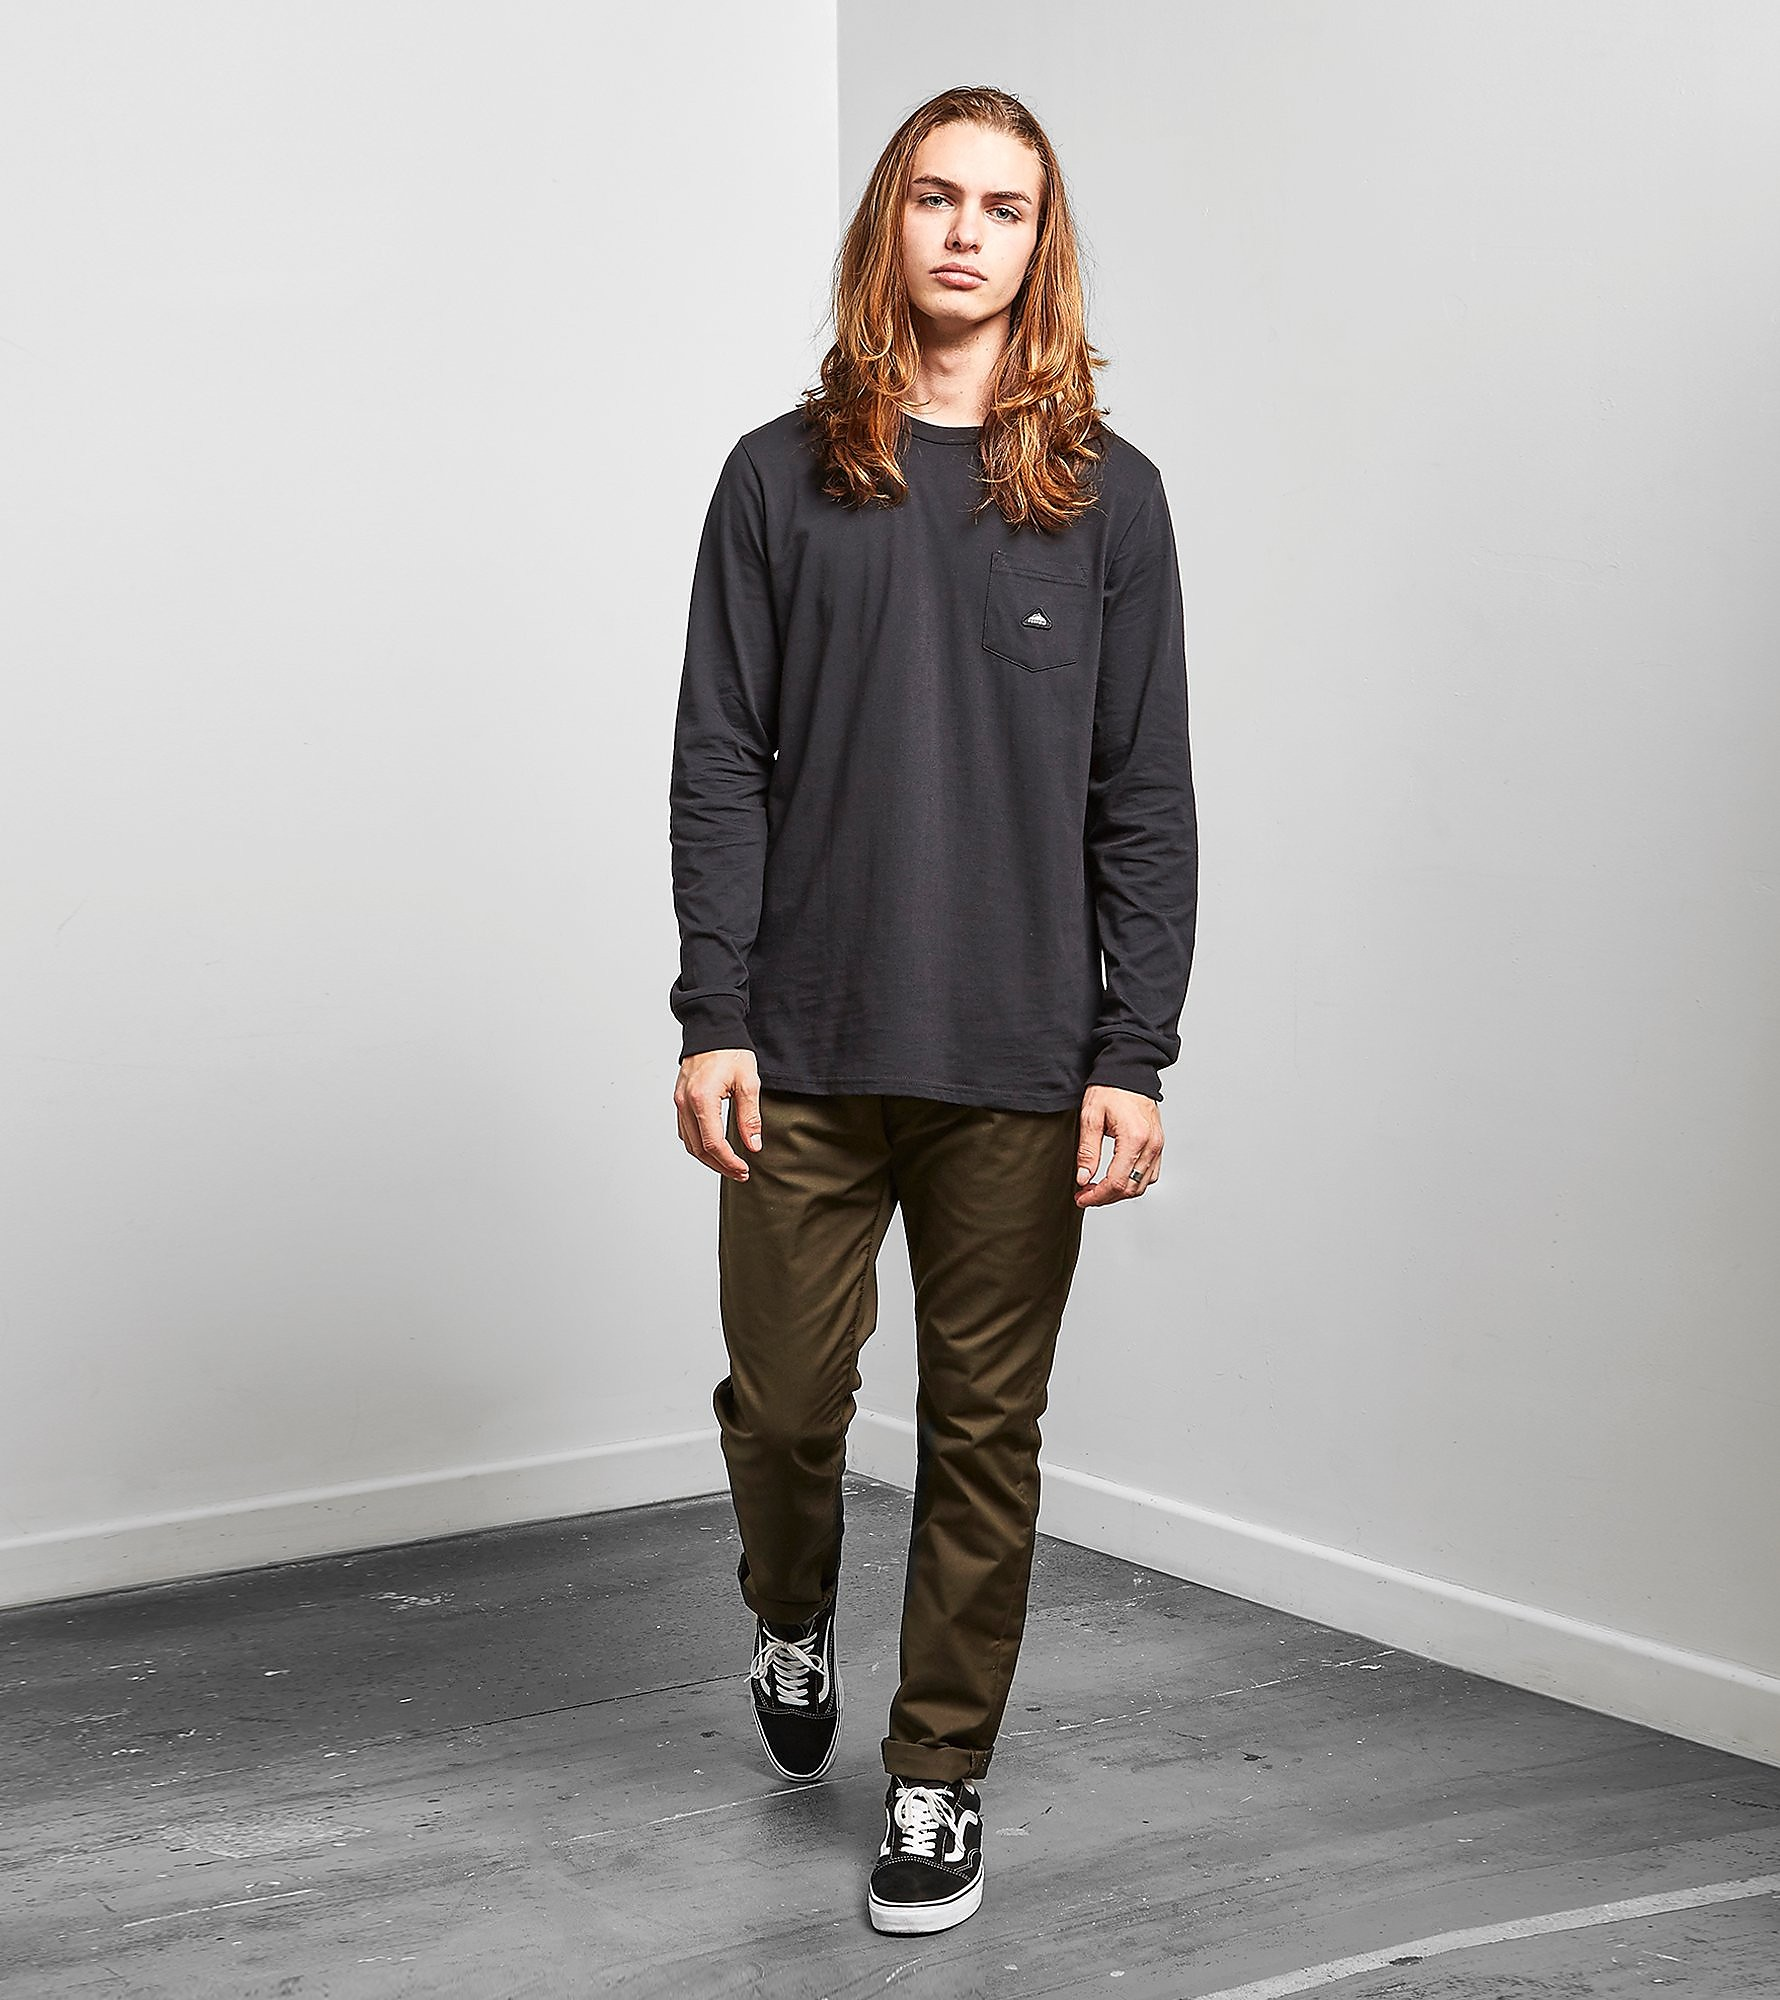 Penfield Northbridge Long Sleeved T-Shirt